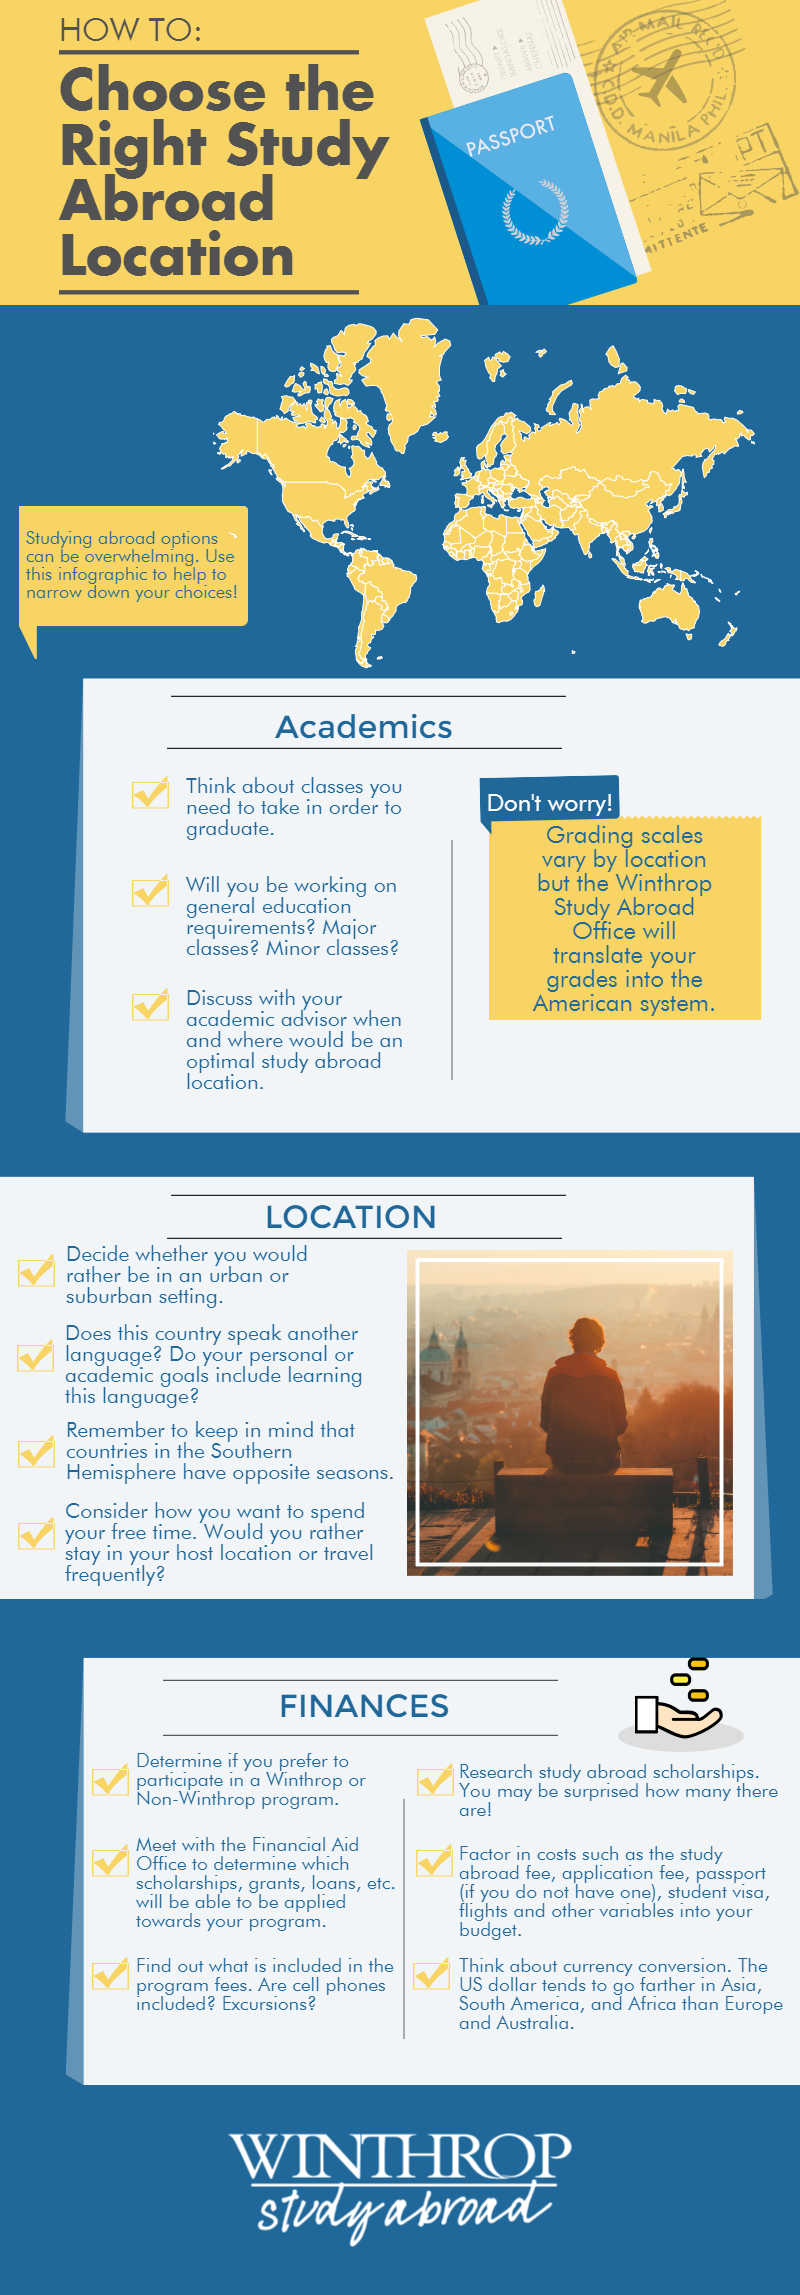 How to Choose the Right Study Abroad Location